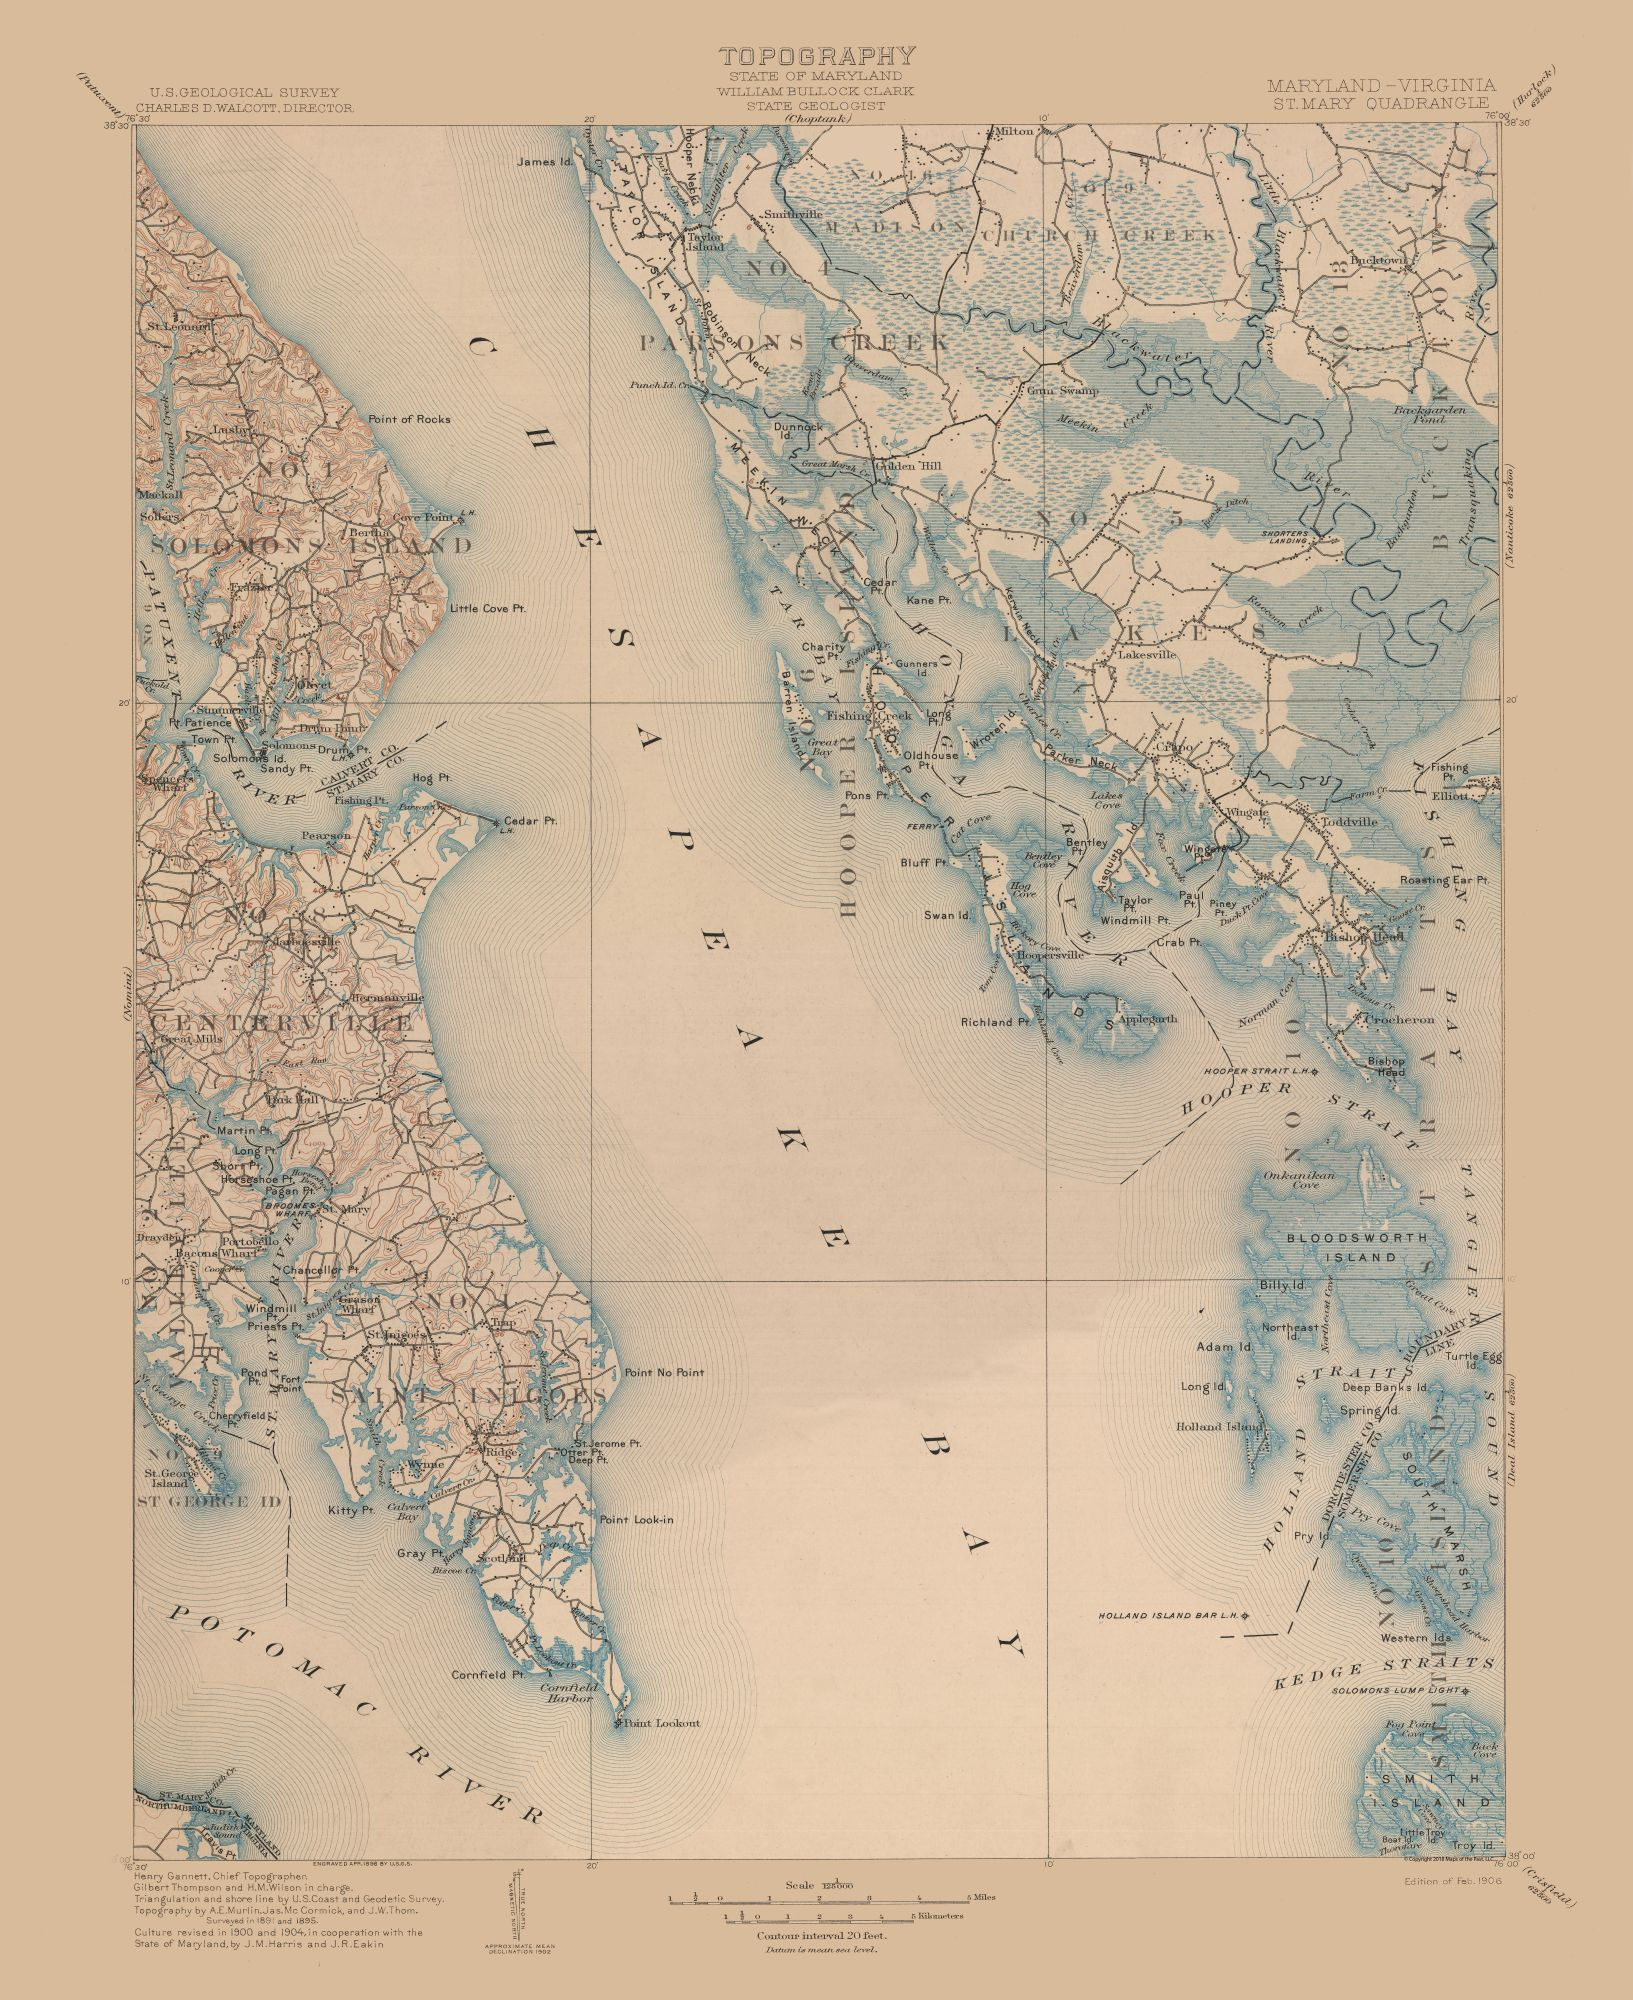 Topographic Map - St Mary Maryland Quad - USGS 1906 - 23 x 28.17